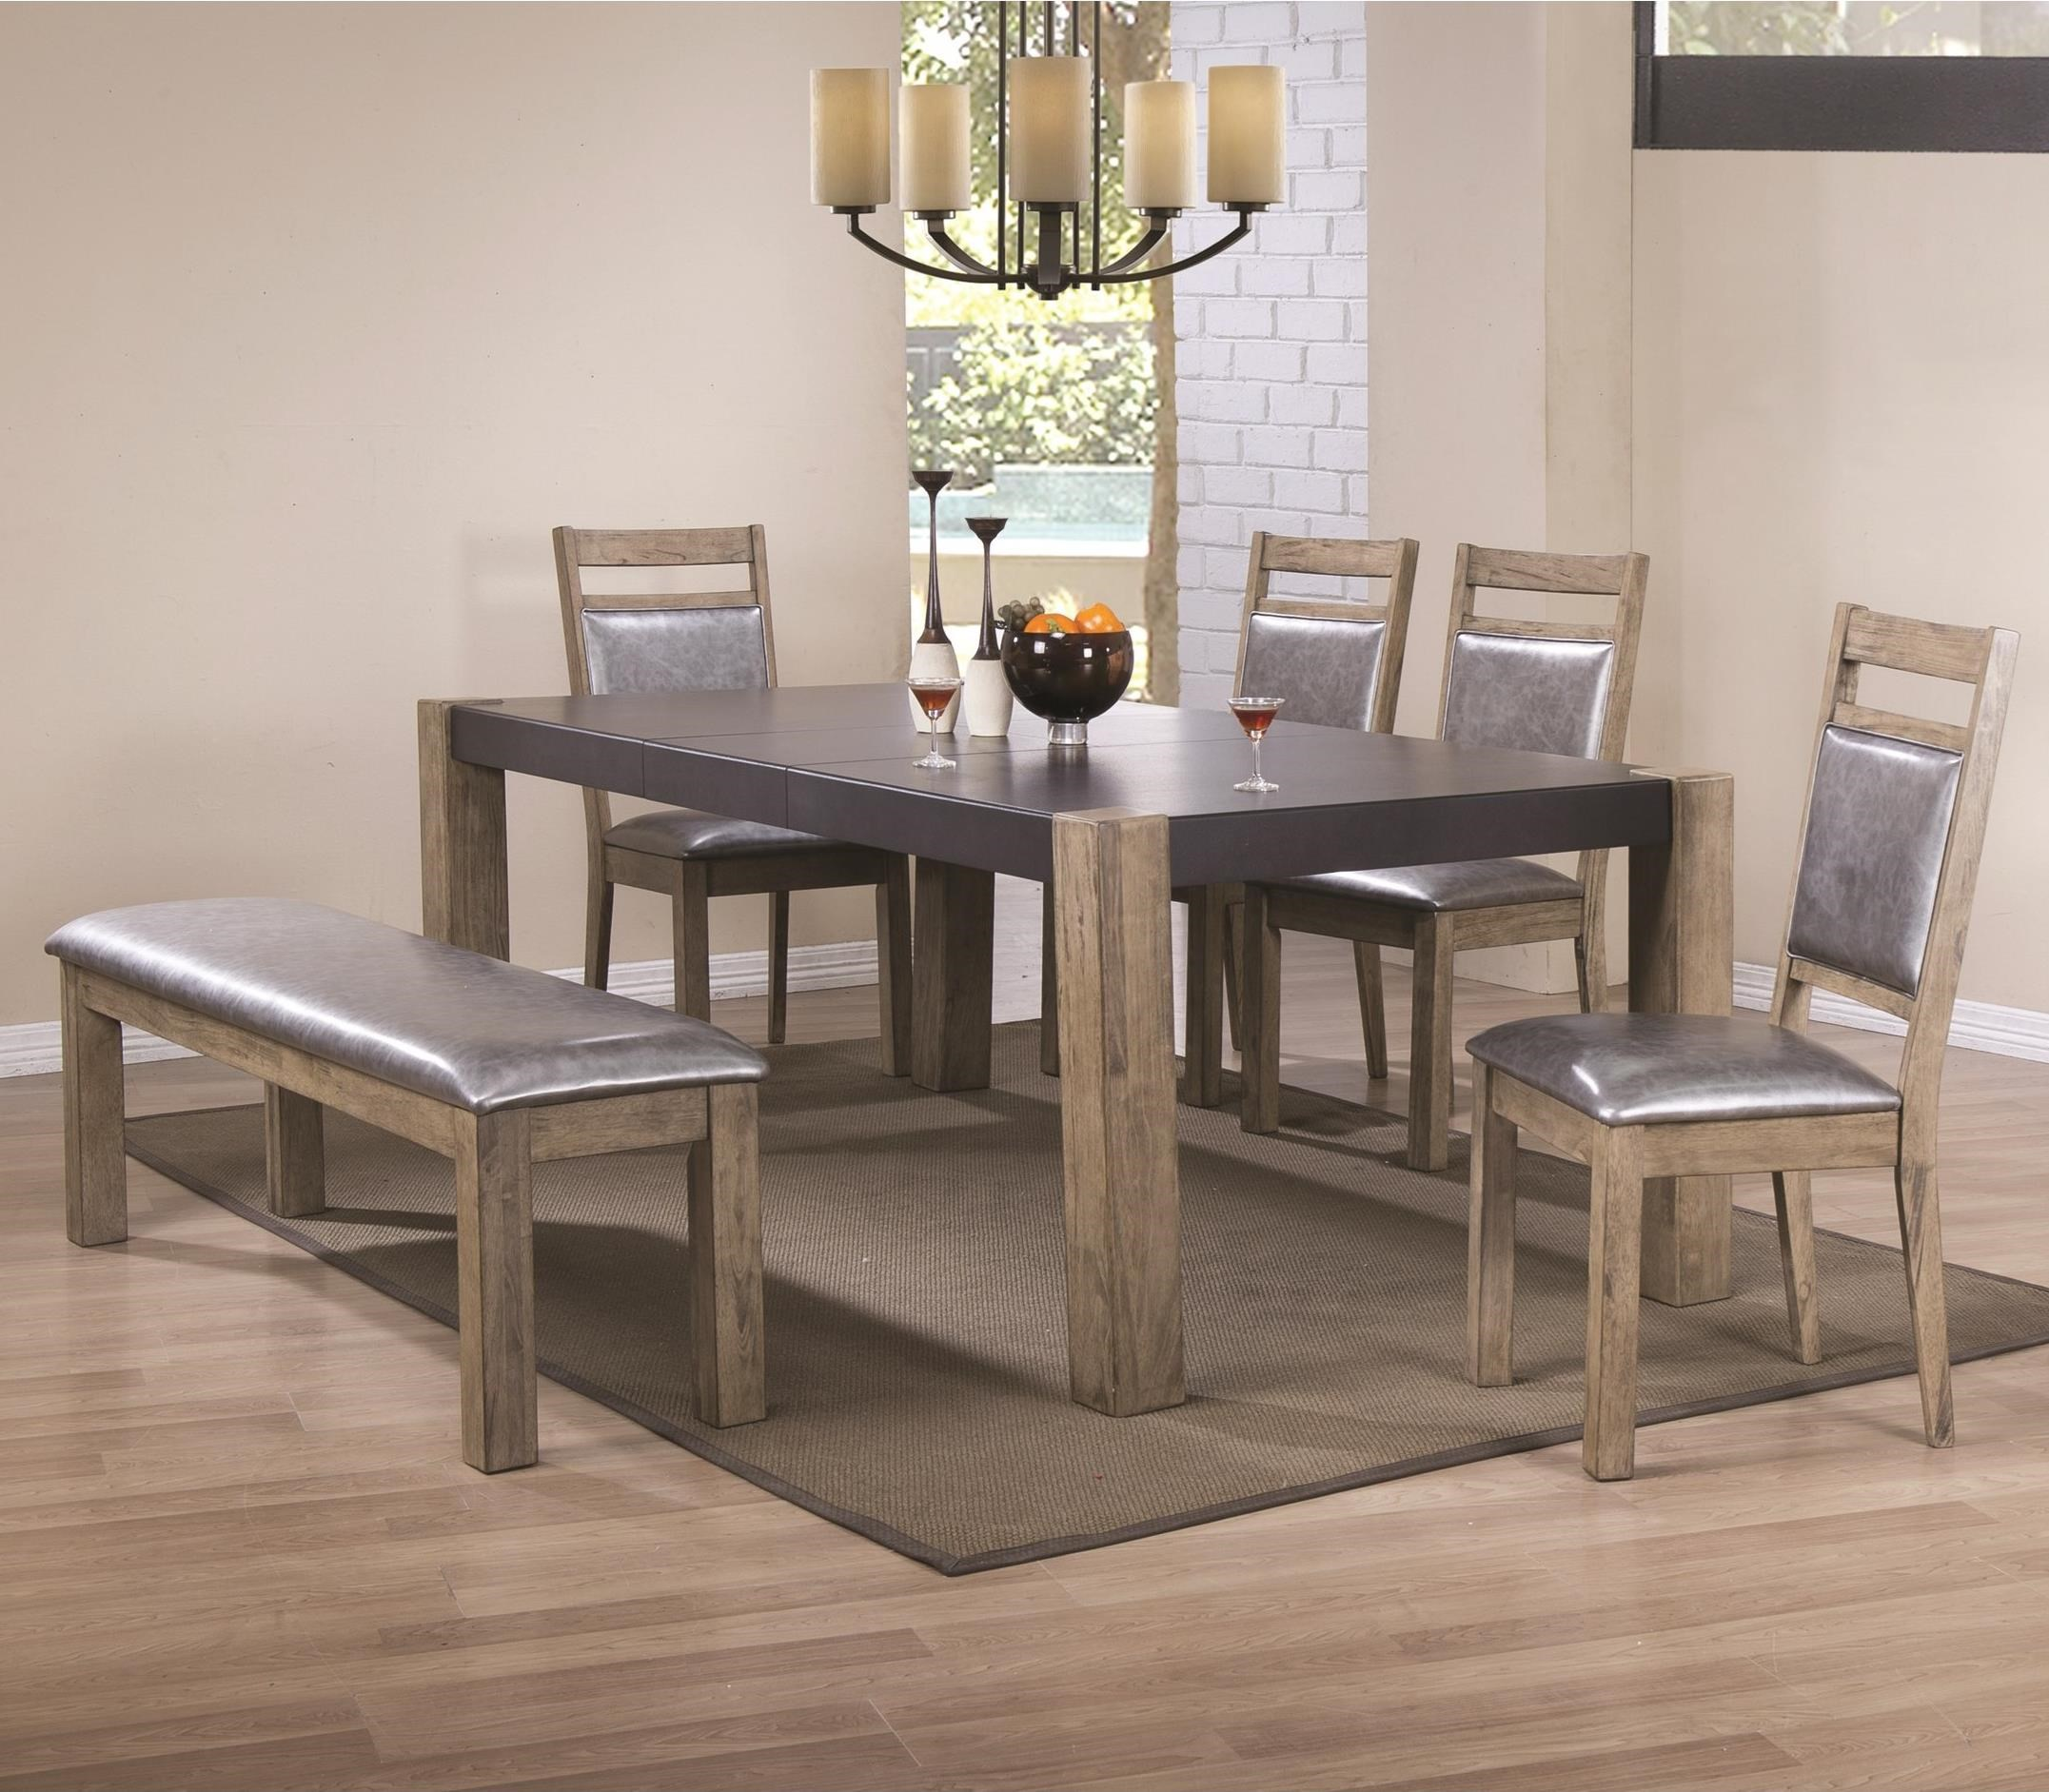 Ludolf dining table and chair set with bench